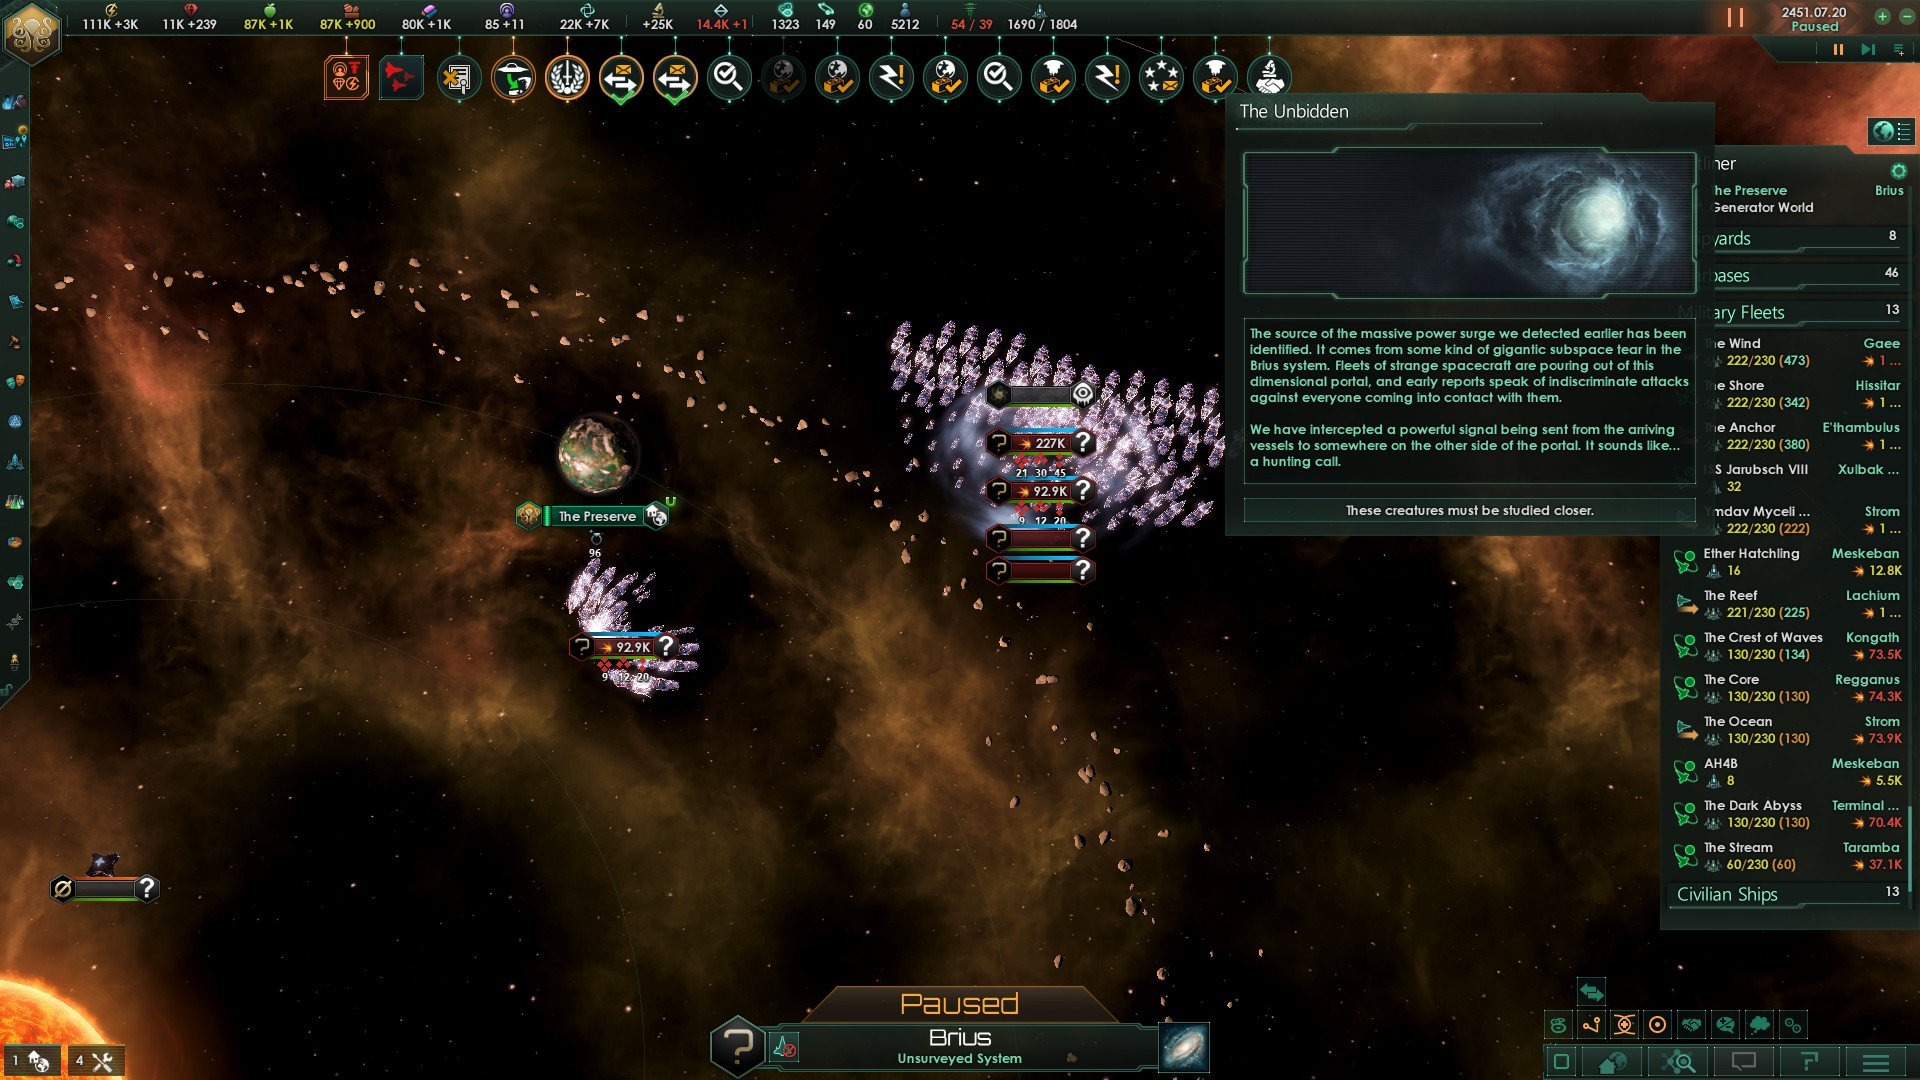 A Tale of Woe and yet, Beauty - Stellaris Games Guide